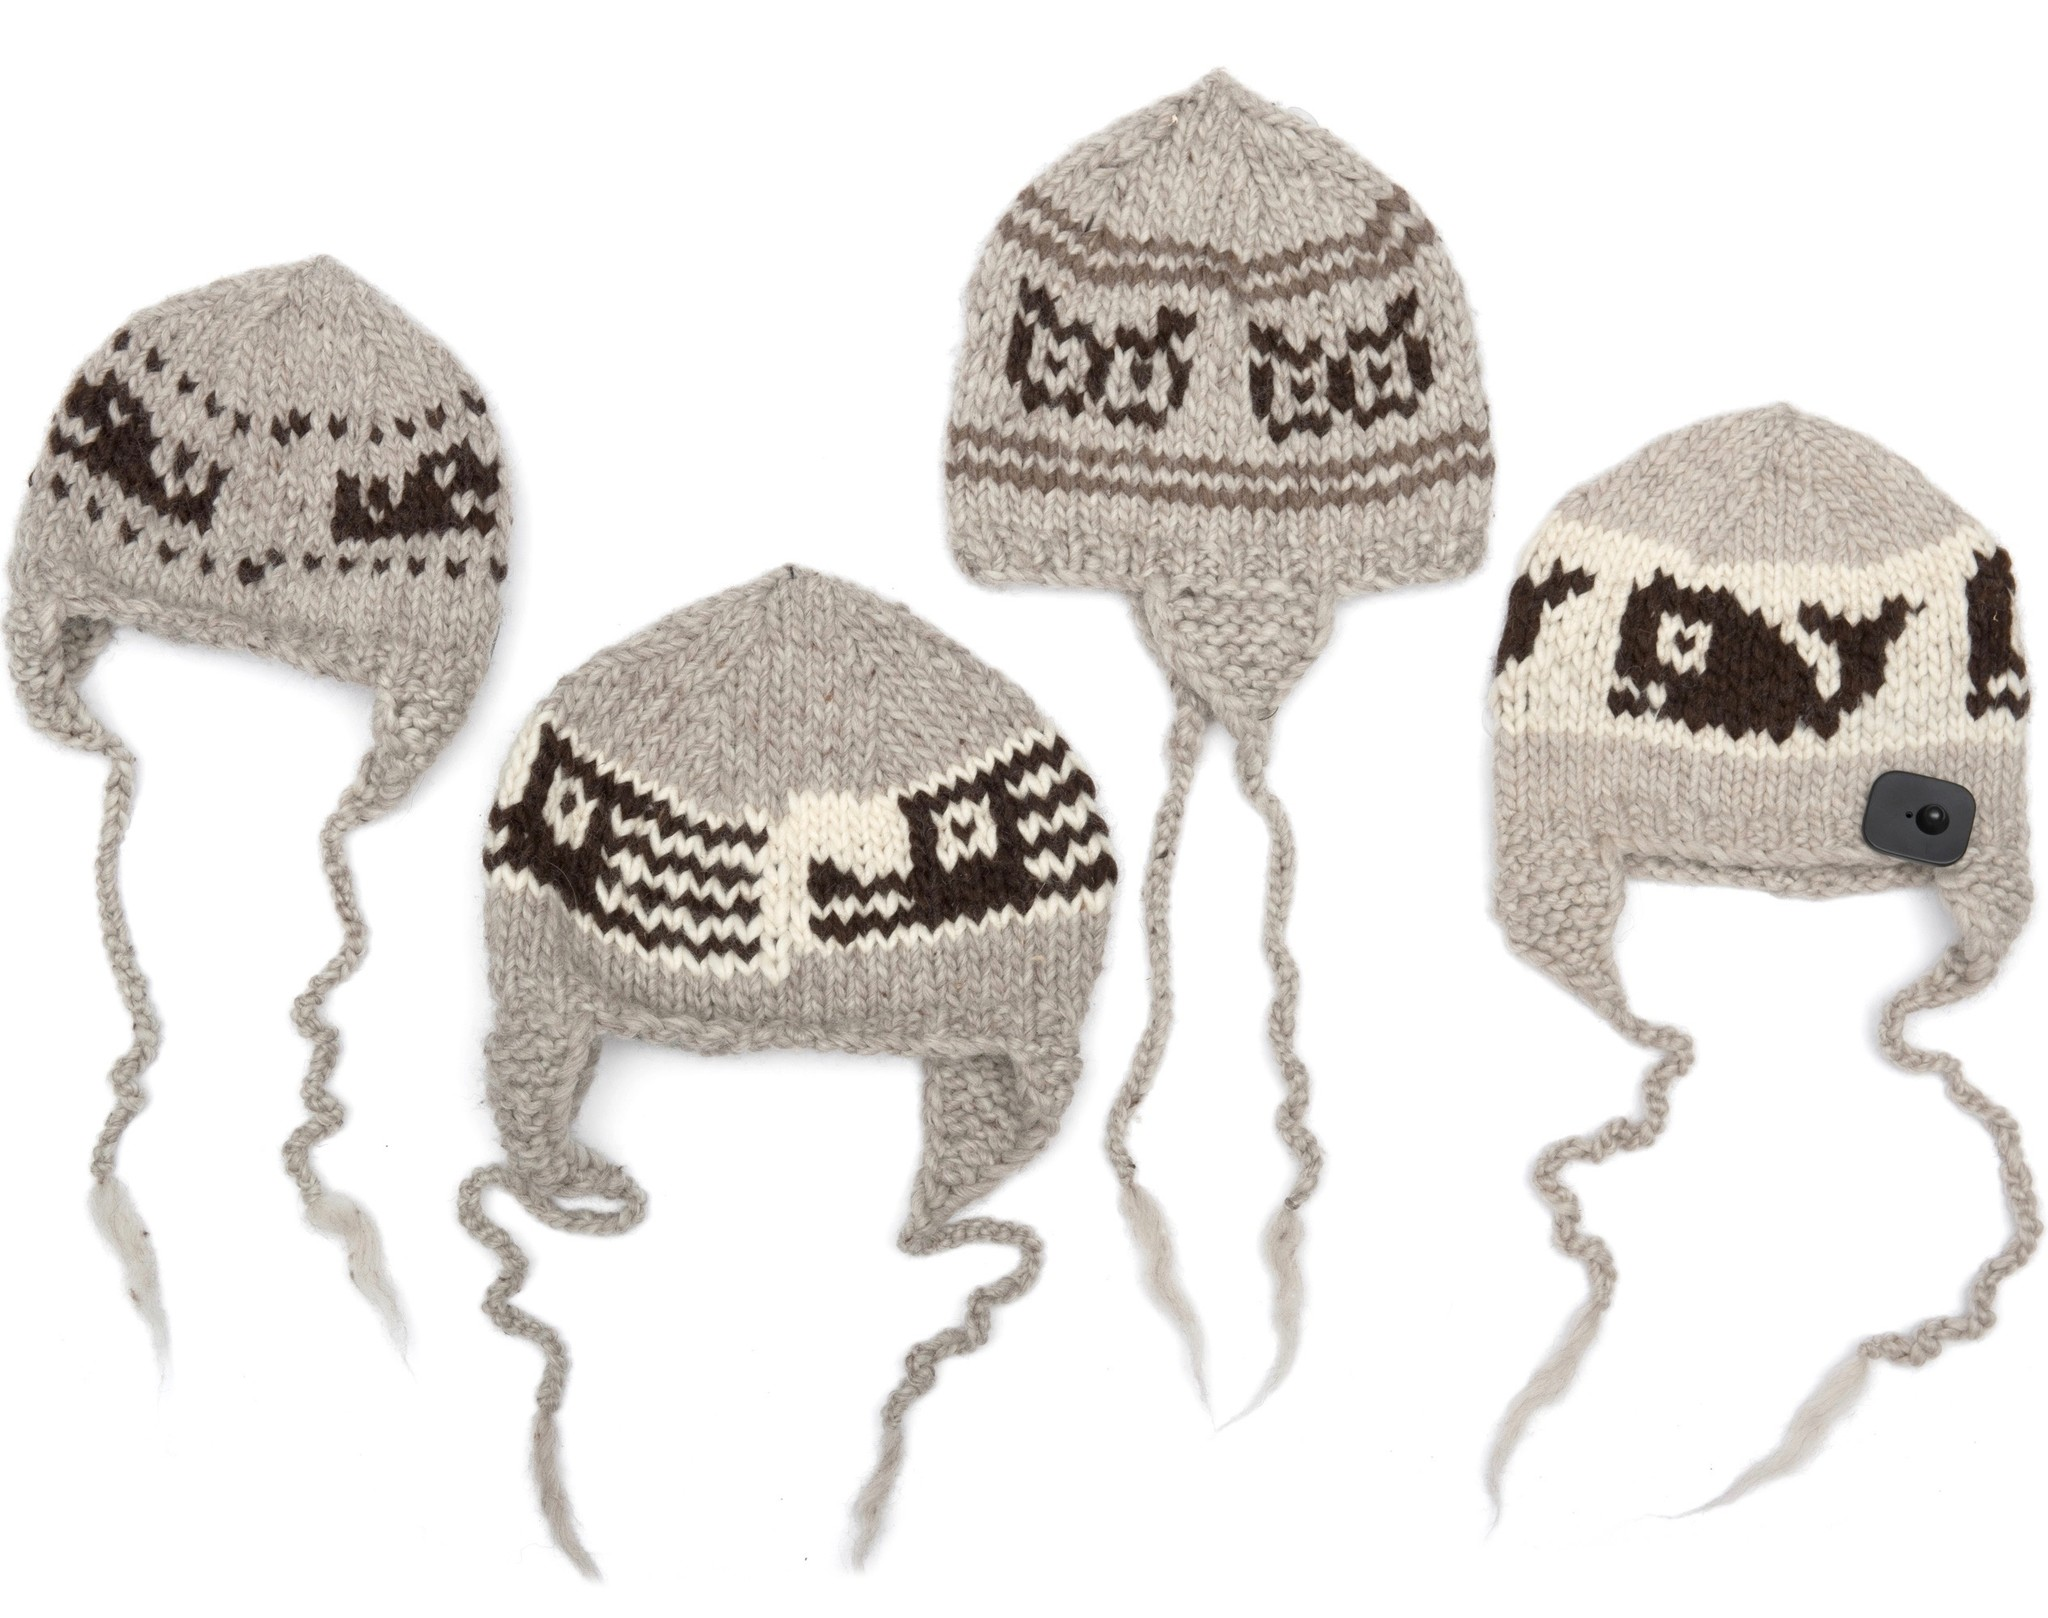 Cowichan Knit Helmet (Toque with Ear Flaps)